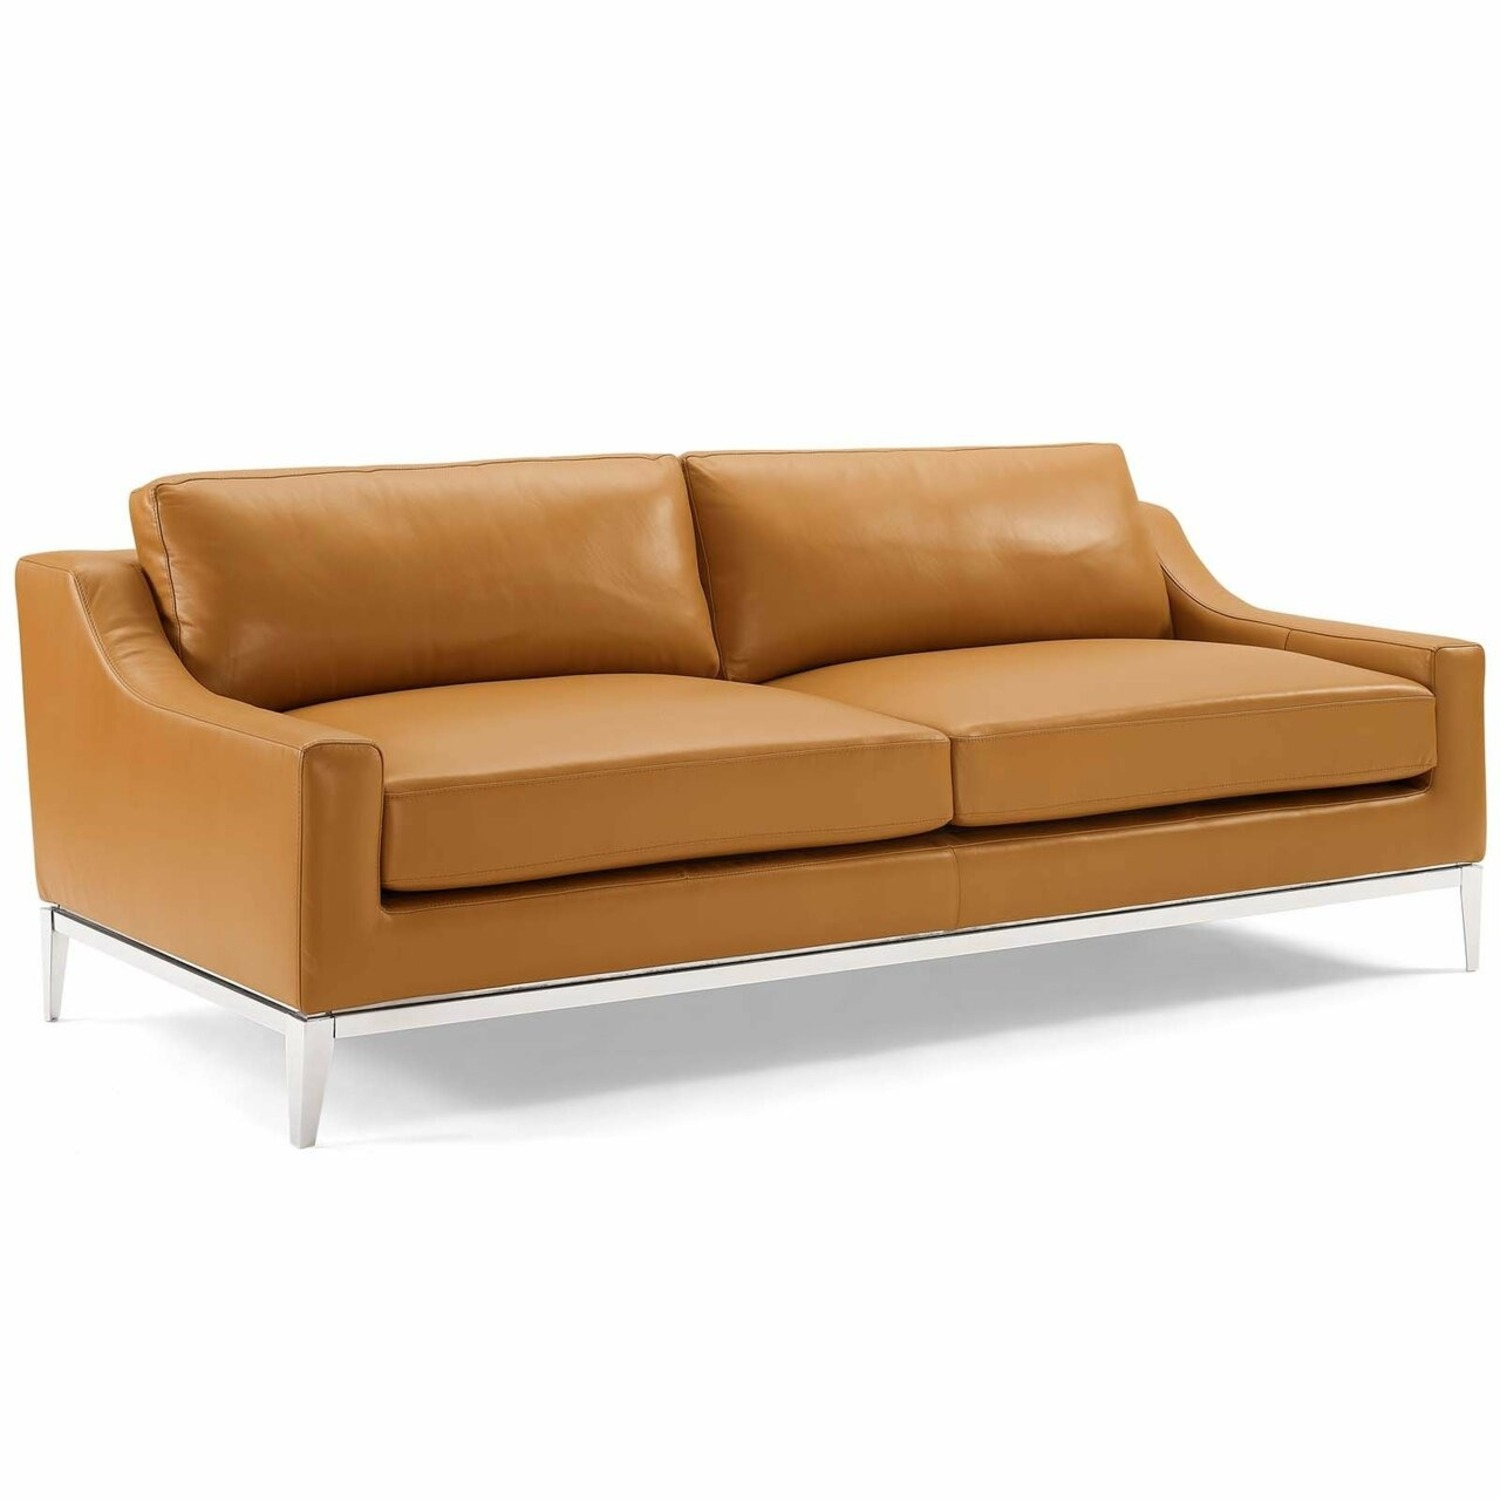 Sofa In Tan Leather Upholstery W/ Steel Base - image-0